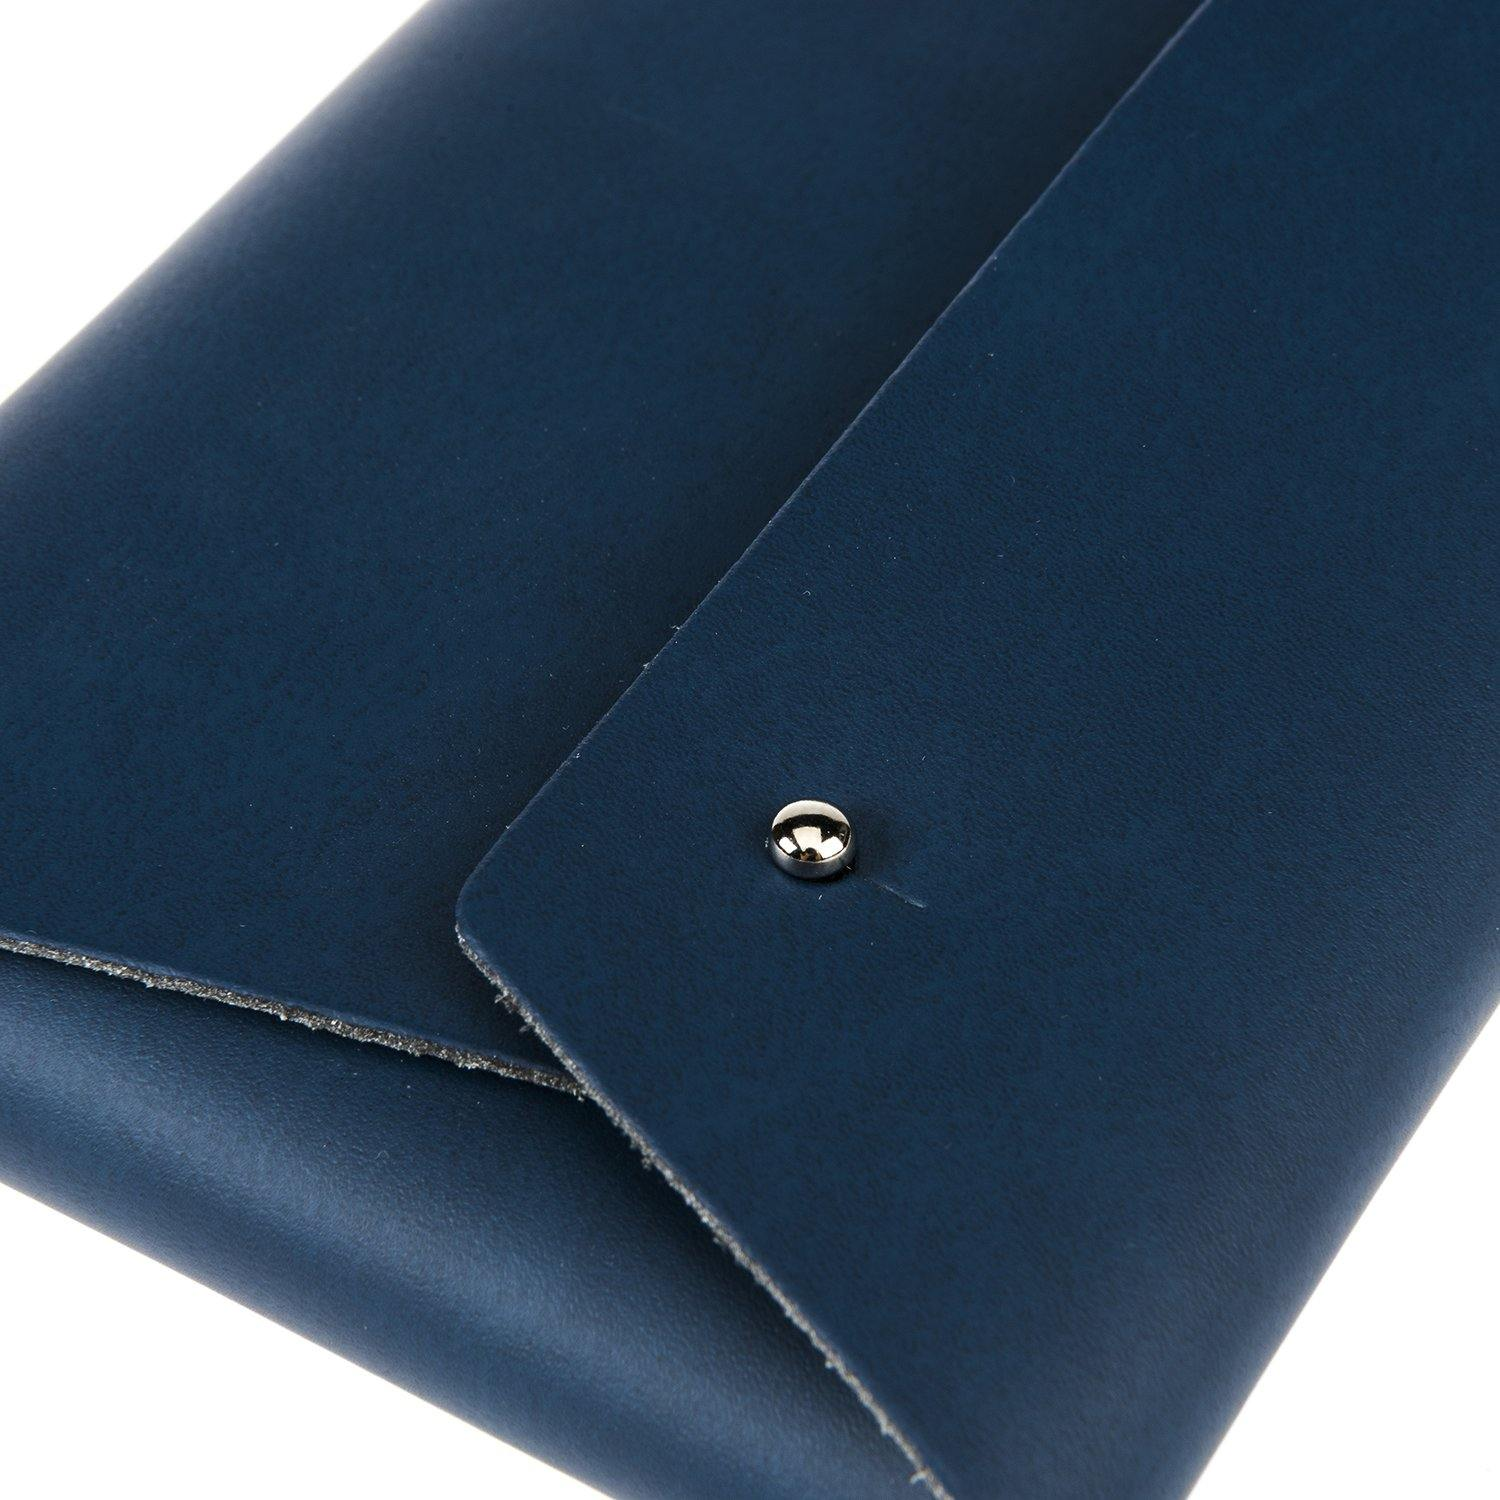 Comisario X Science Museum Leather Pouch Navy2